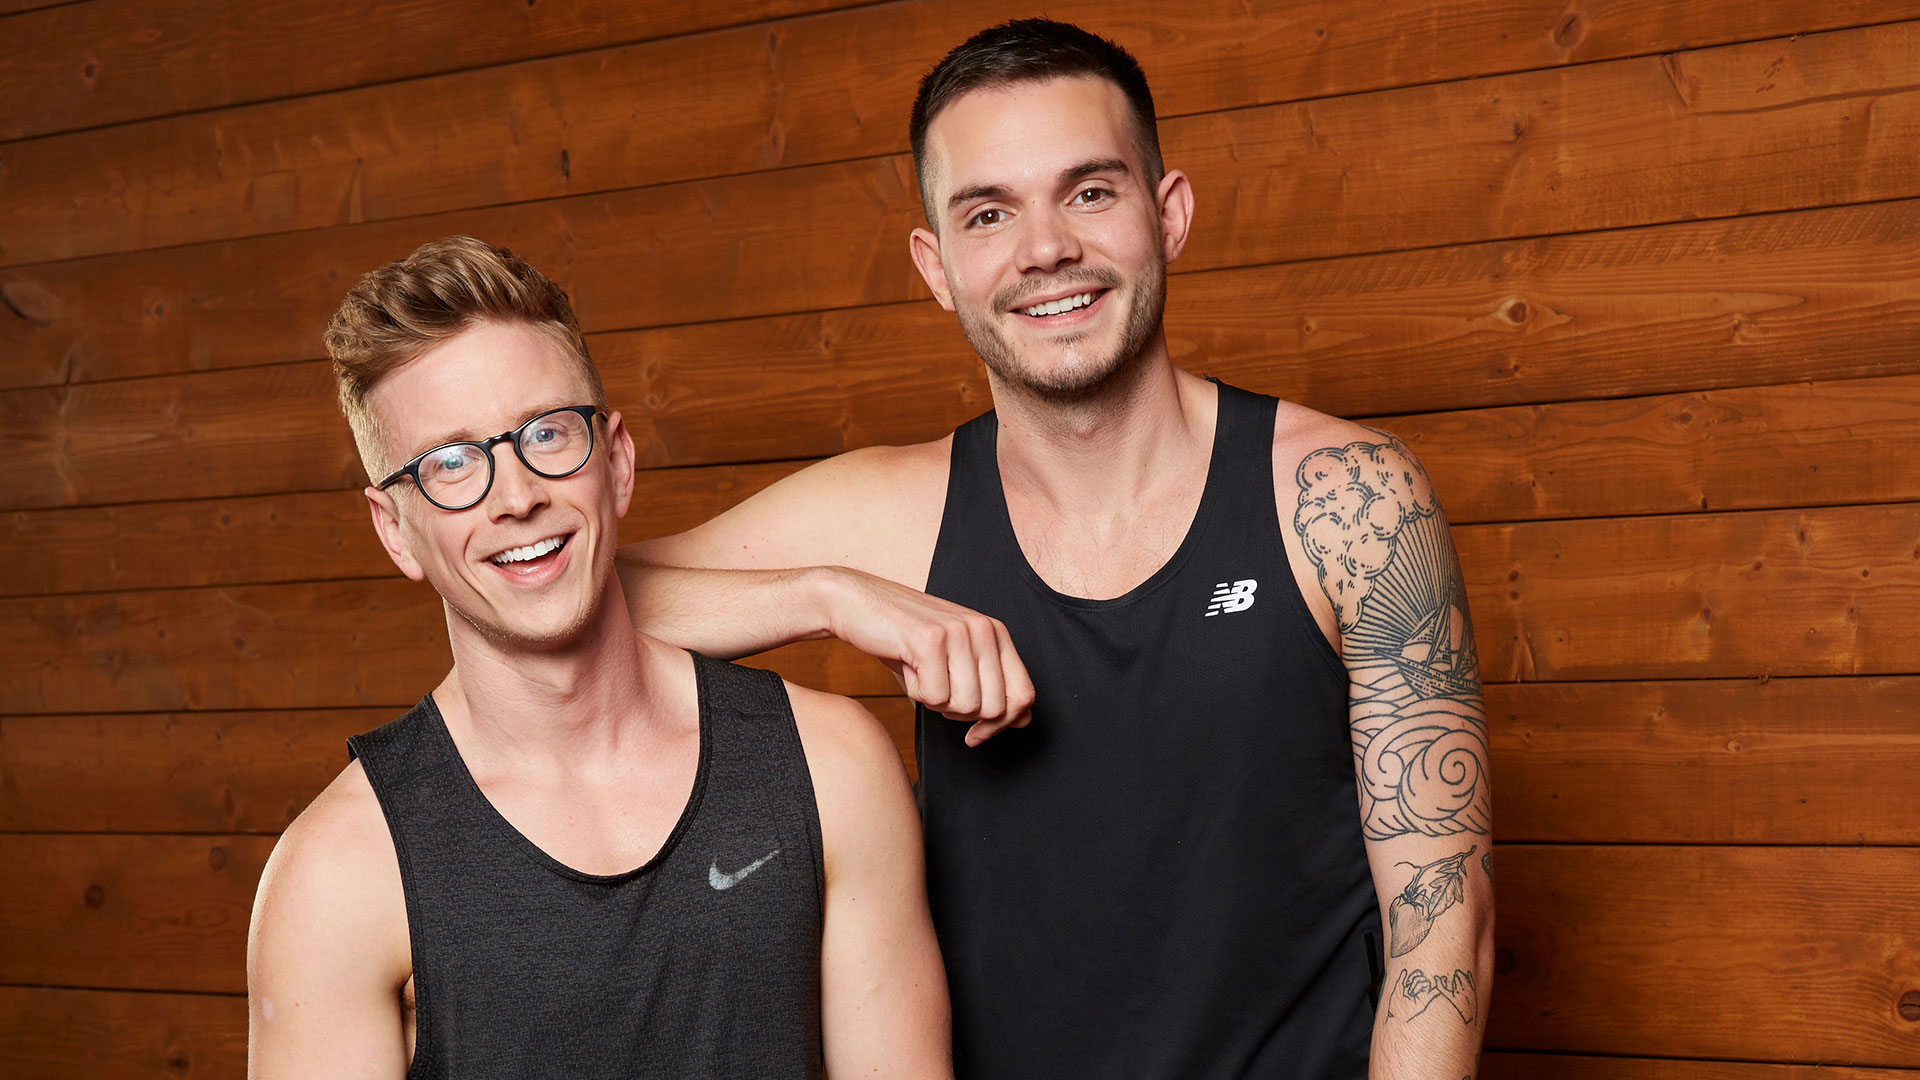 Tyler Oakley and Korey Kuhl (Best Friends)